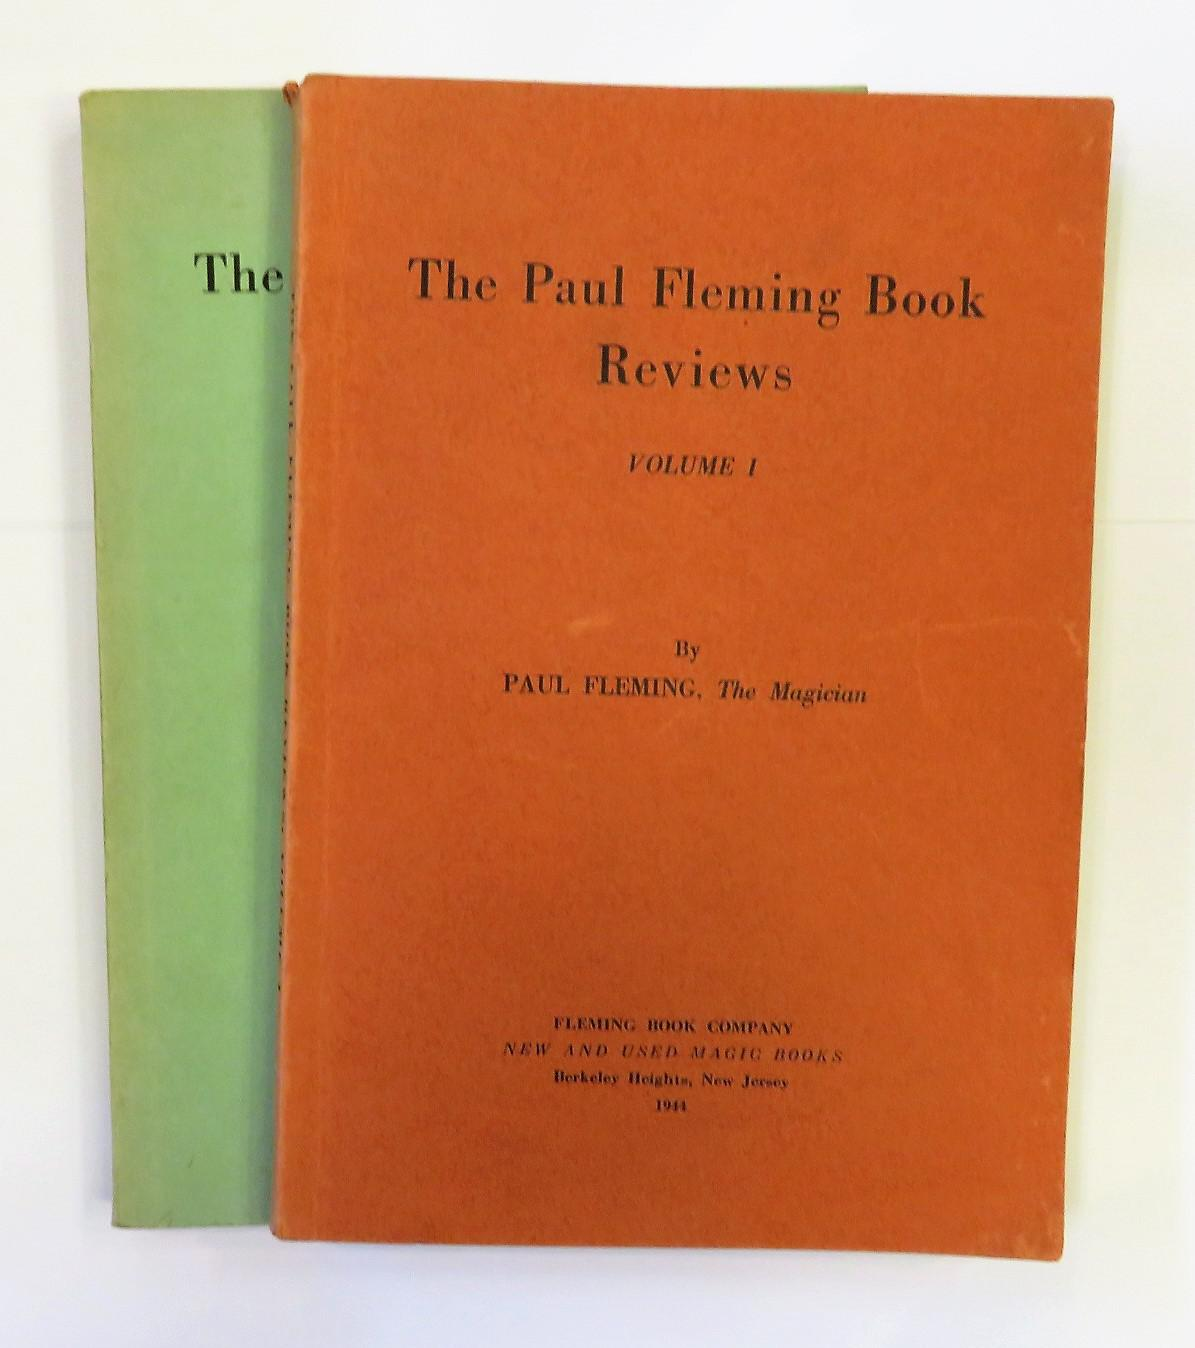 The Paul Fleming Book Reviews Two volumes